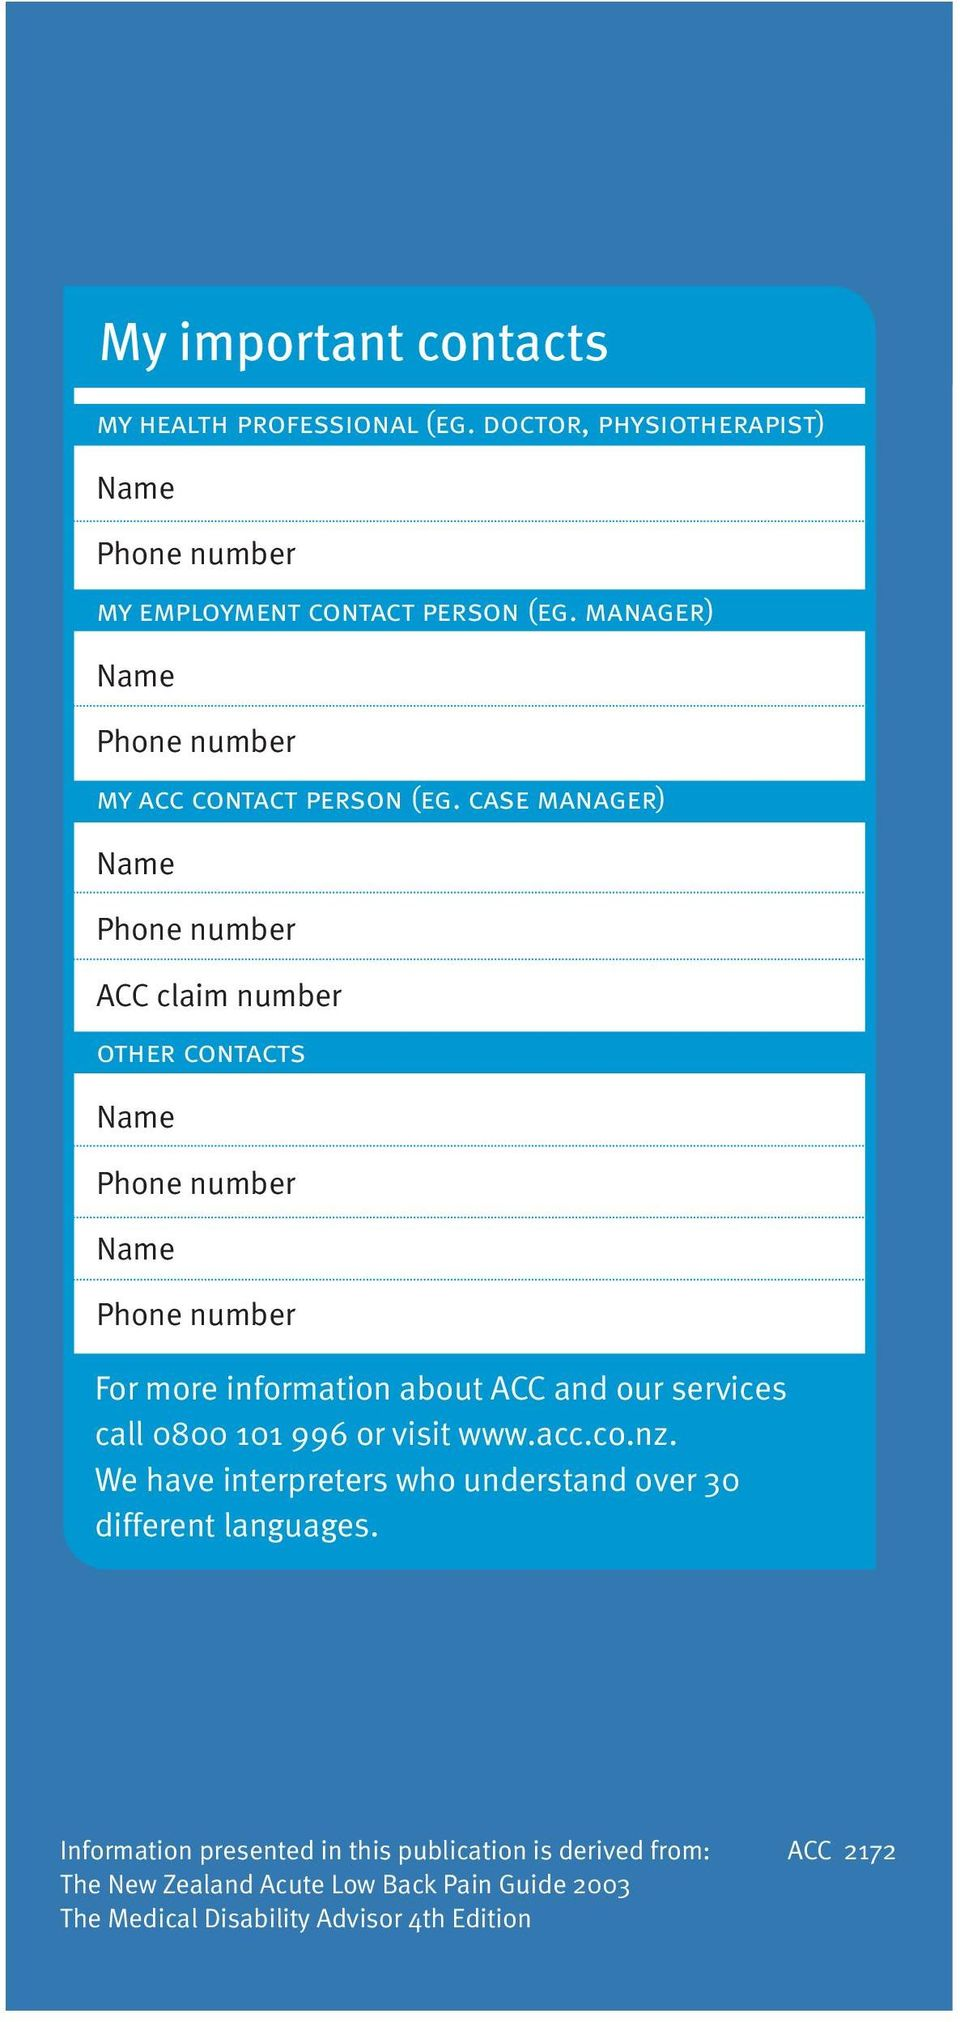 case manager) ACC claim number other contacts For more information about ACC and our services call 0800 101 996 or visit www.